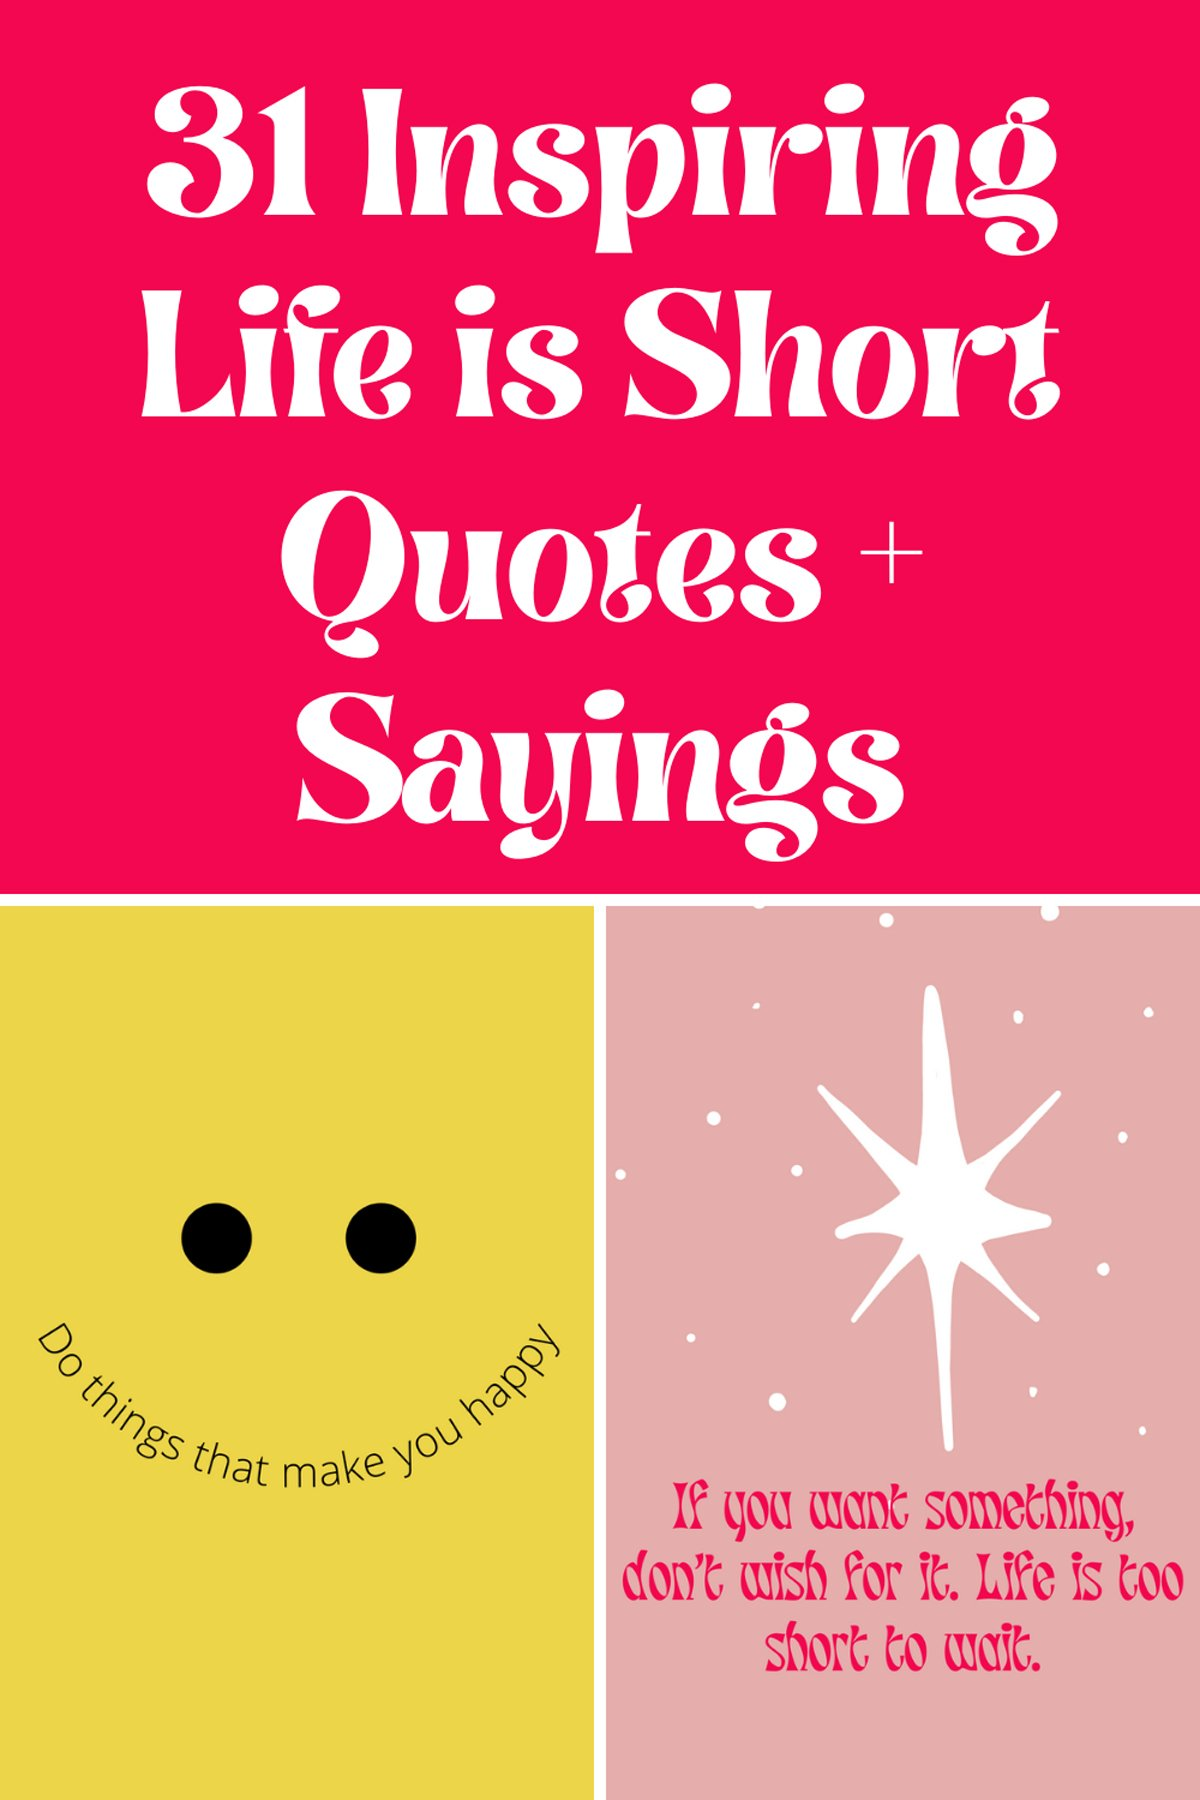 Life is Short Quotes and Sayings